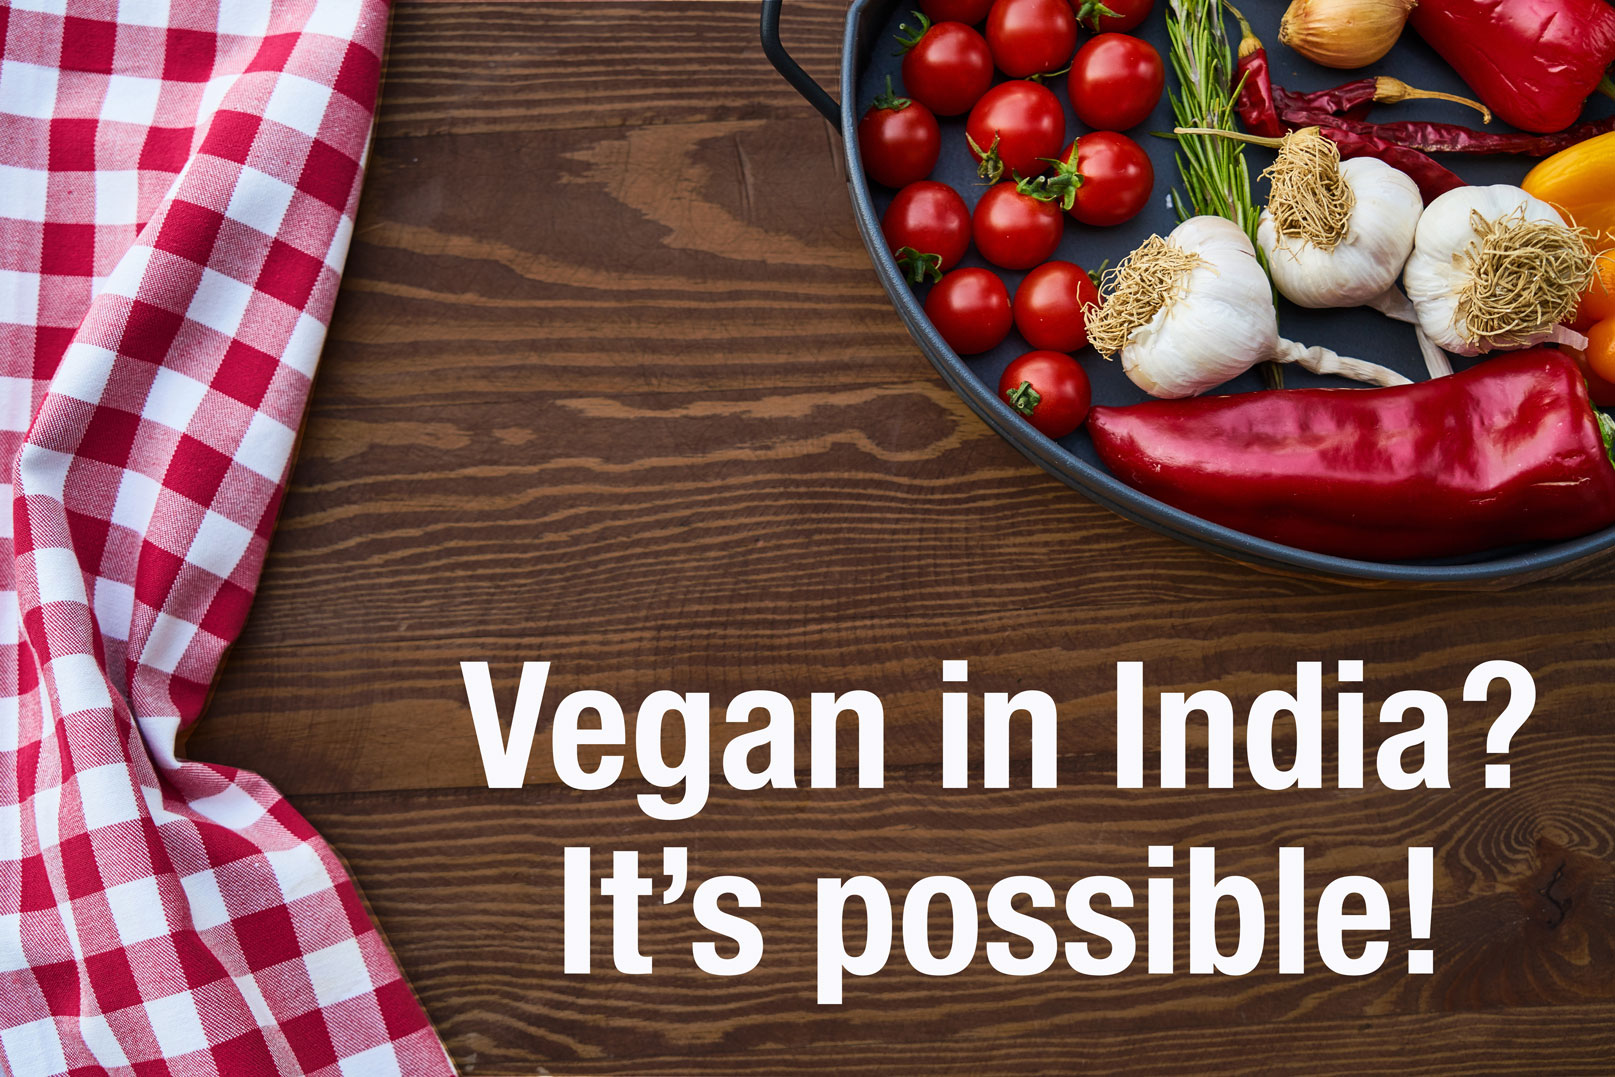 Love Indian Food But Want to Stay Vegan? Try These Alternatives